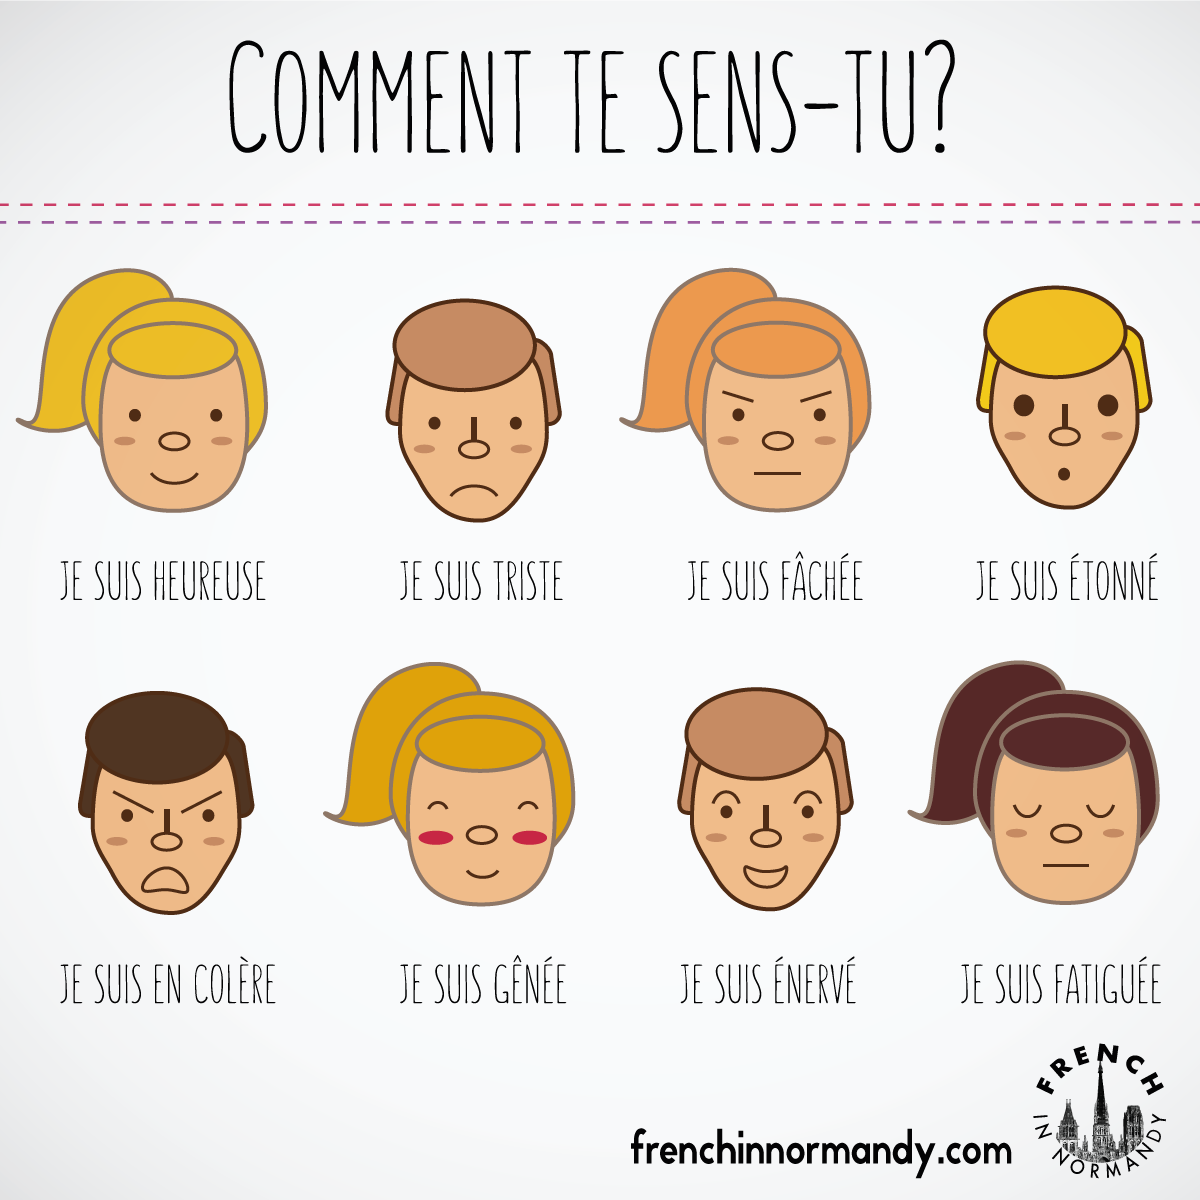 Learn French #1: Comment te sens-tu? - French in Normandy